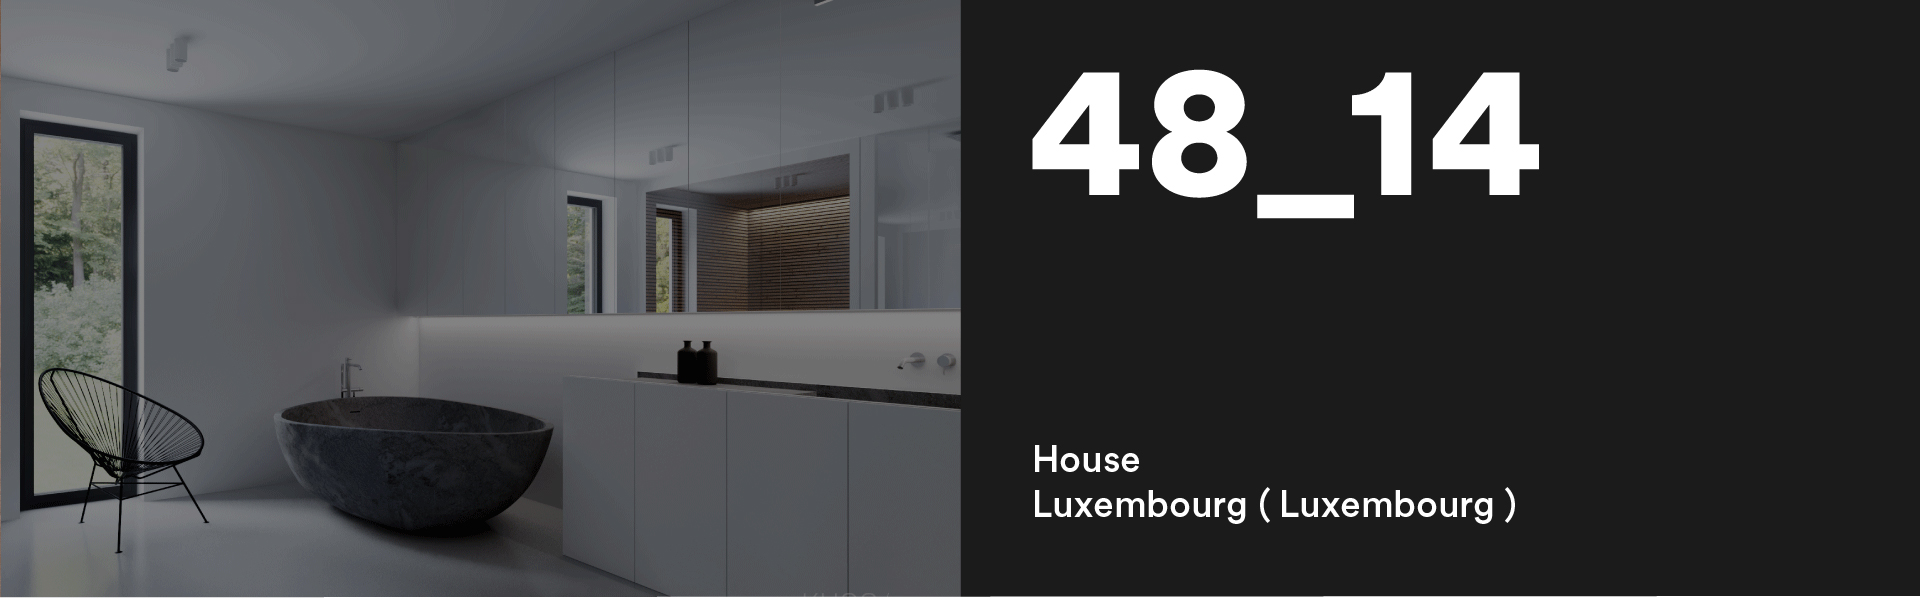 48_14 House Luxembourg